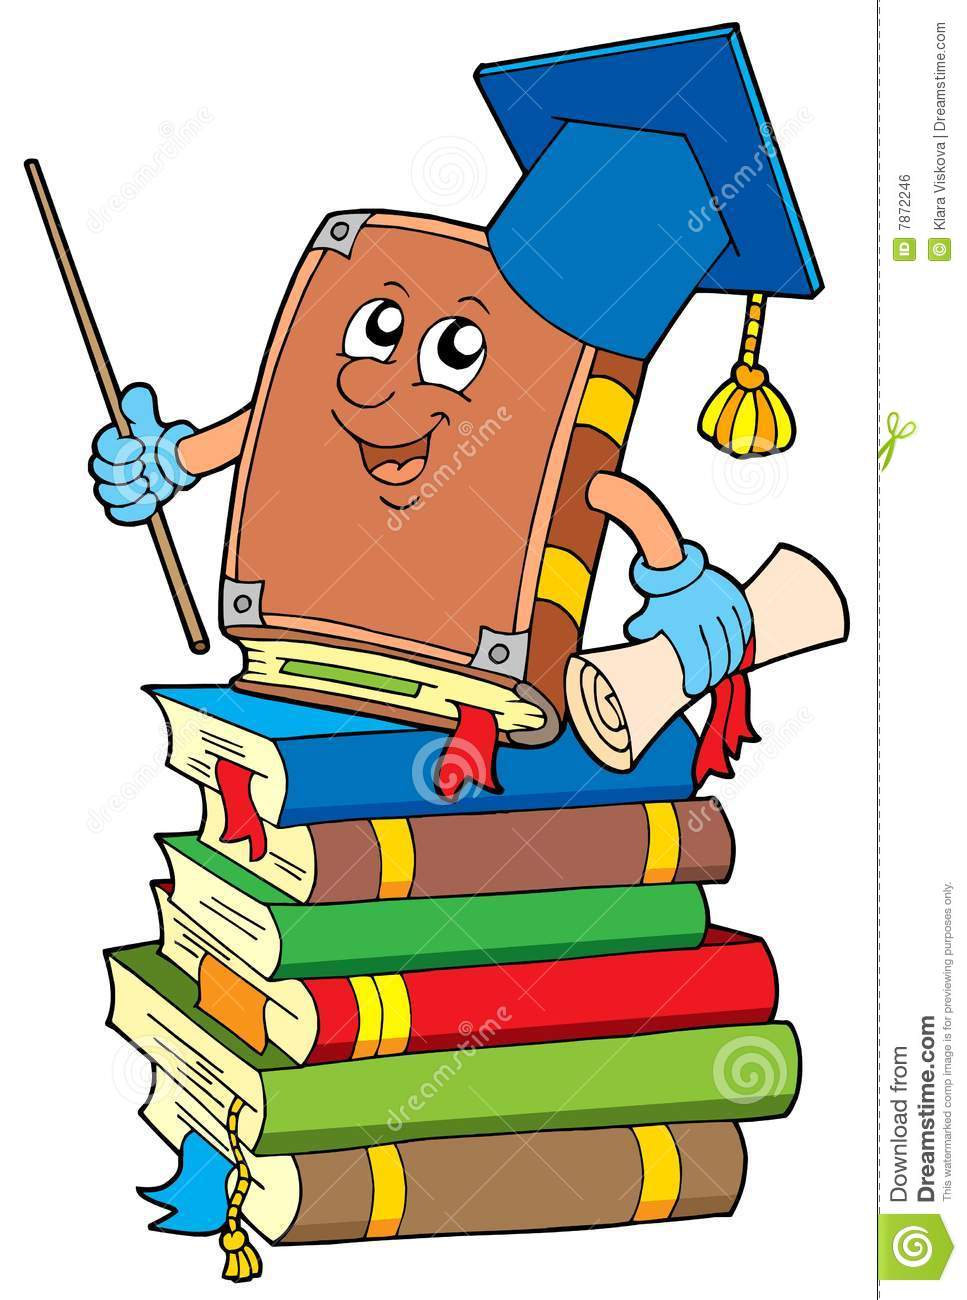 books teacher cartoon pile clipart illustration classroom royalty lector point drawings graphics illustrations graduate college preview clip murals washing worksheet